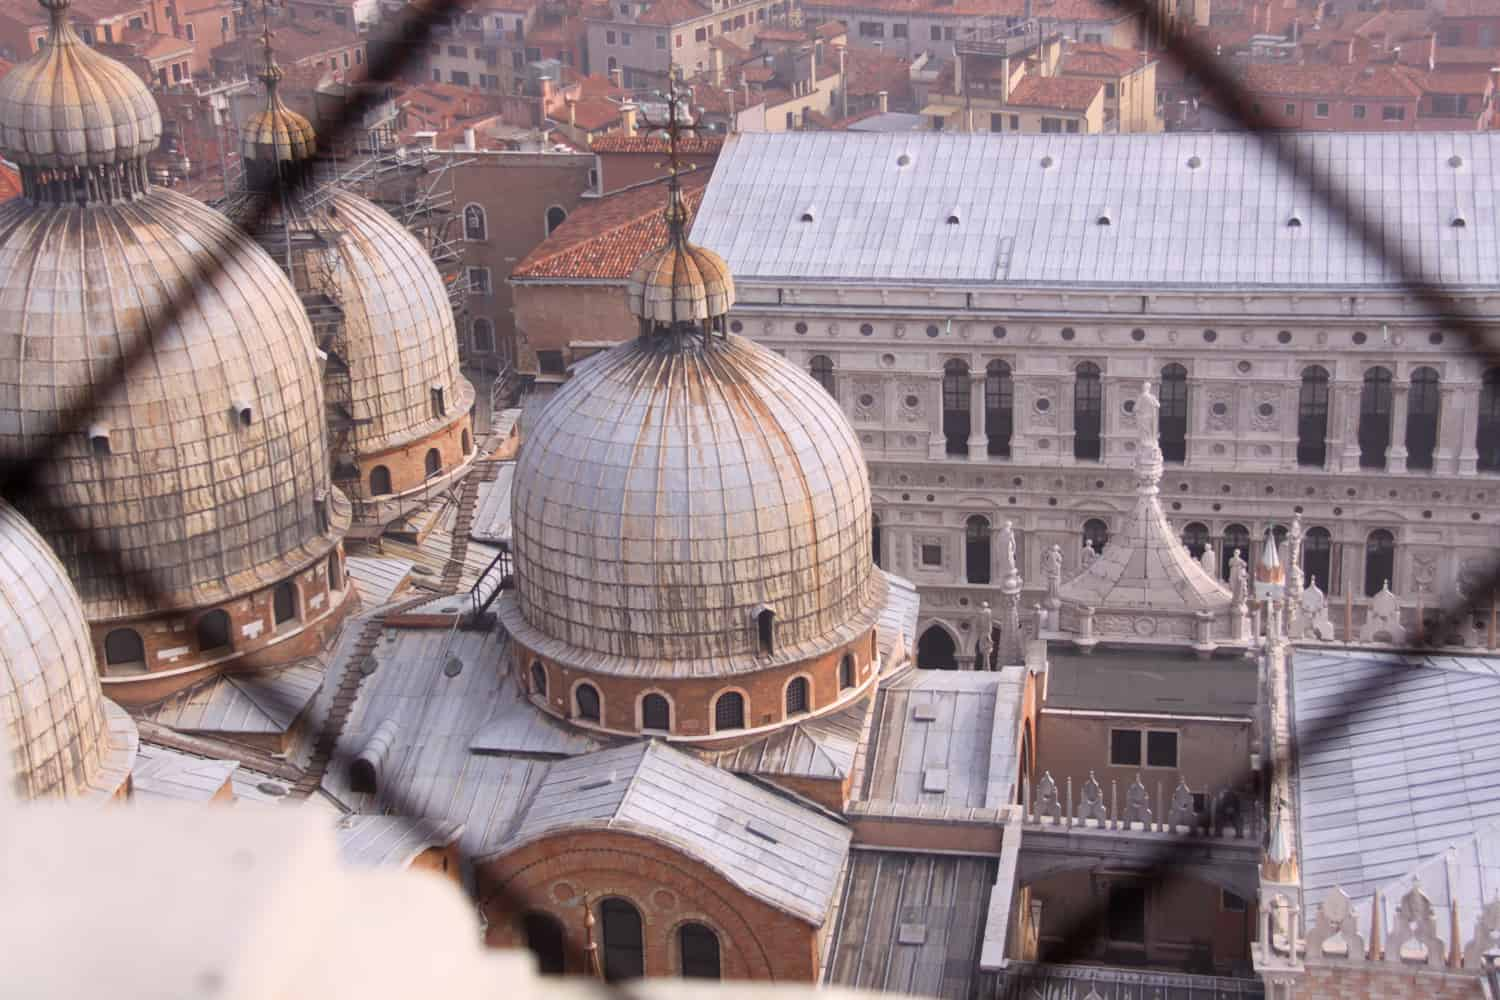 St. Marks domes in Venice seen from inside the Campanile